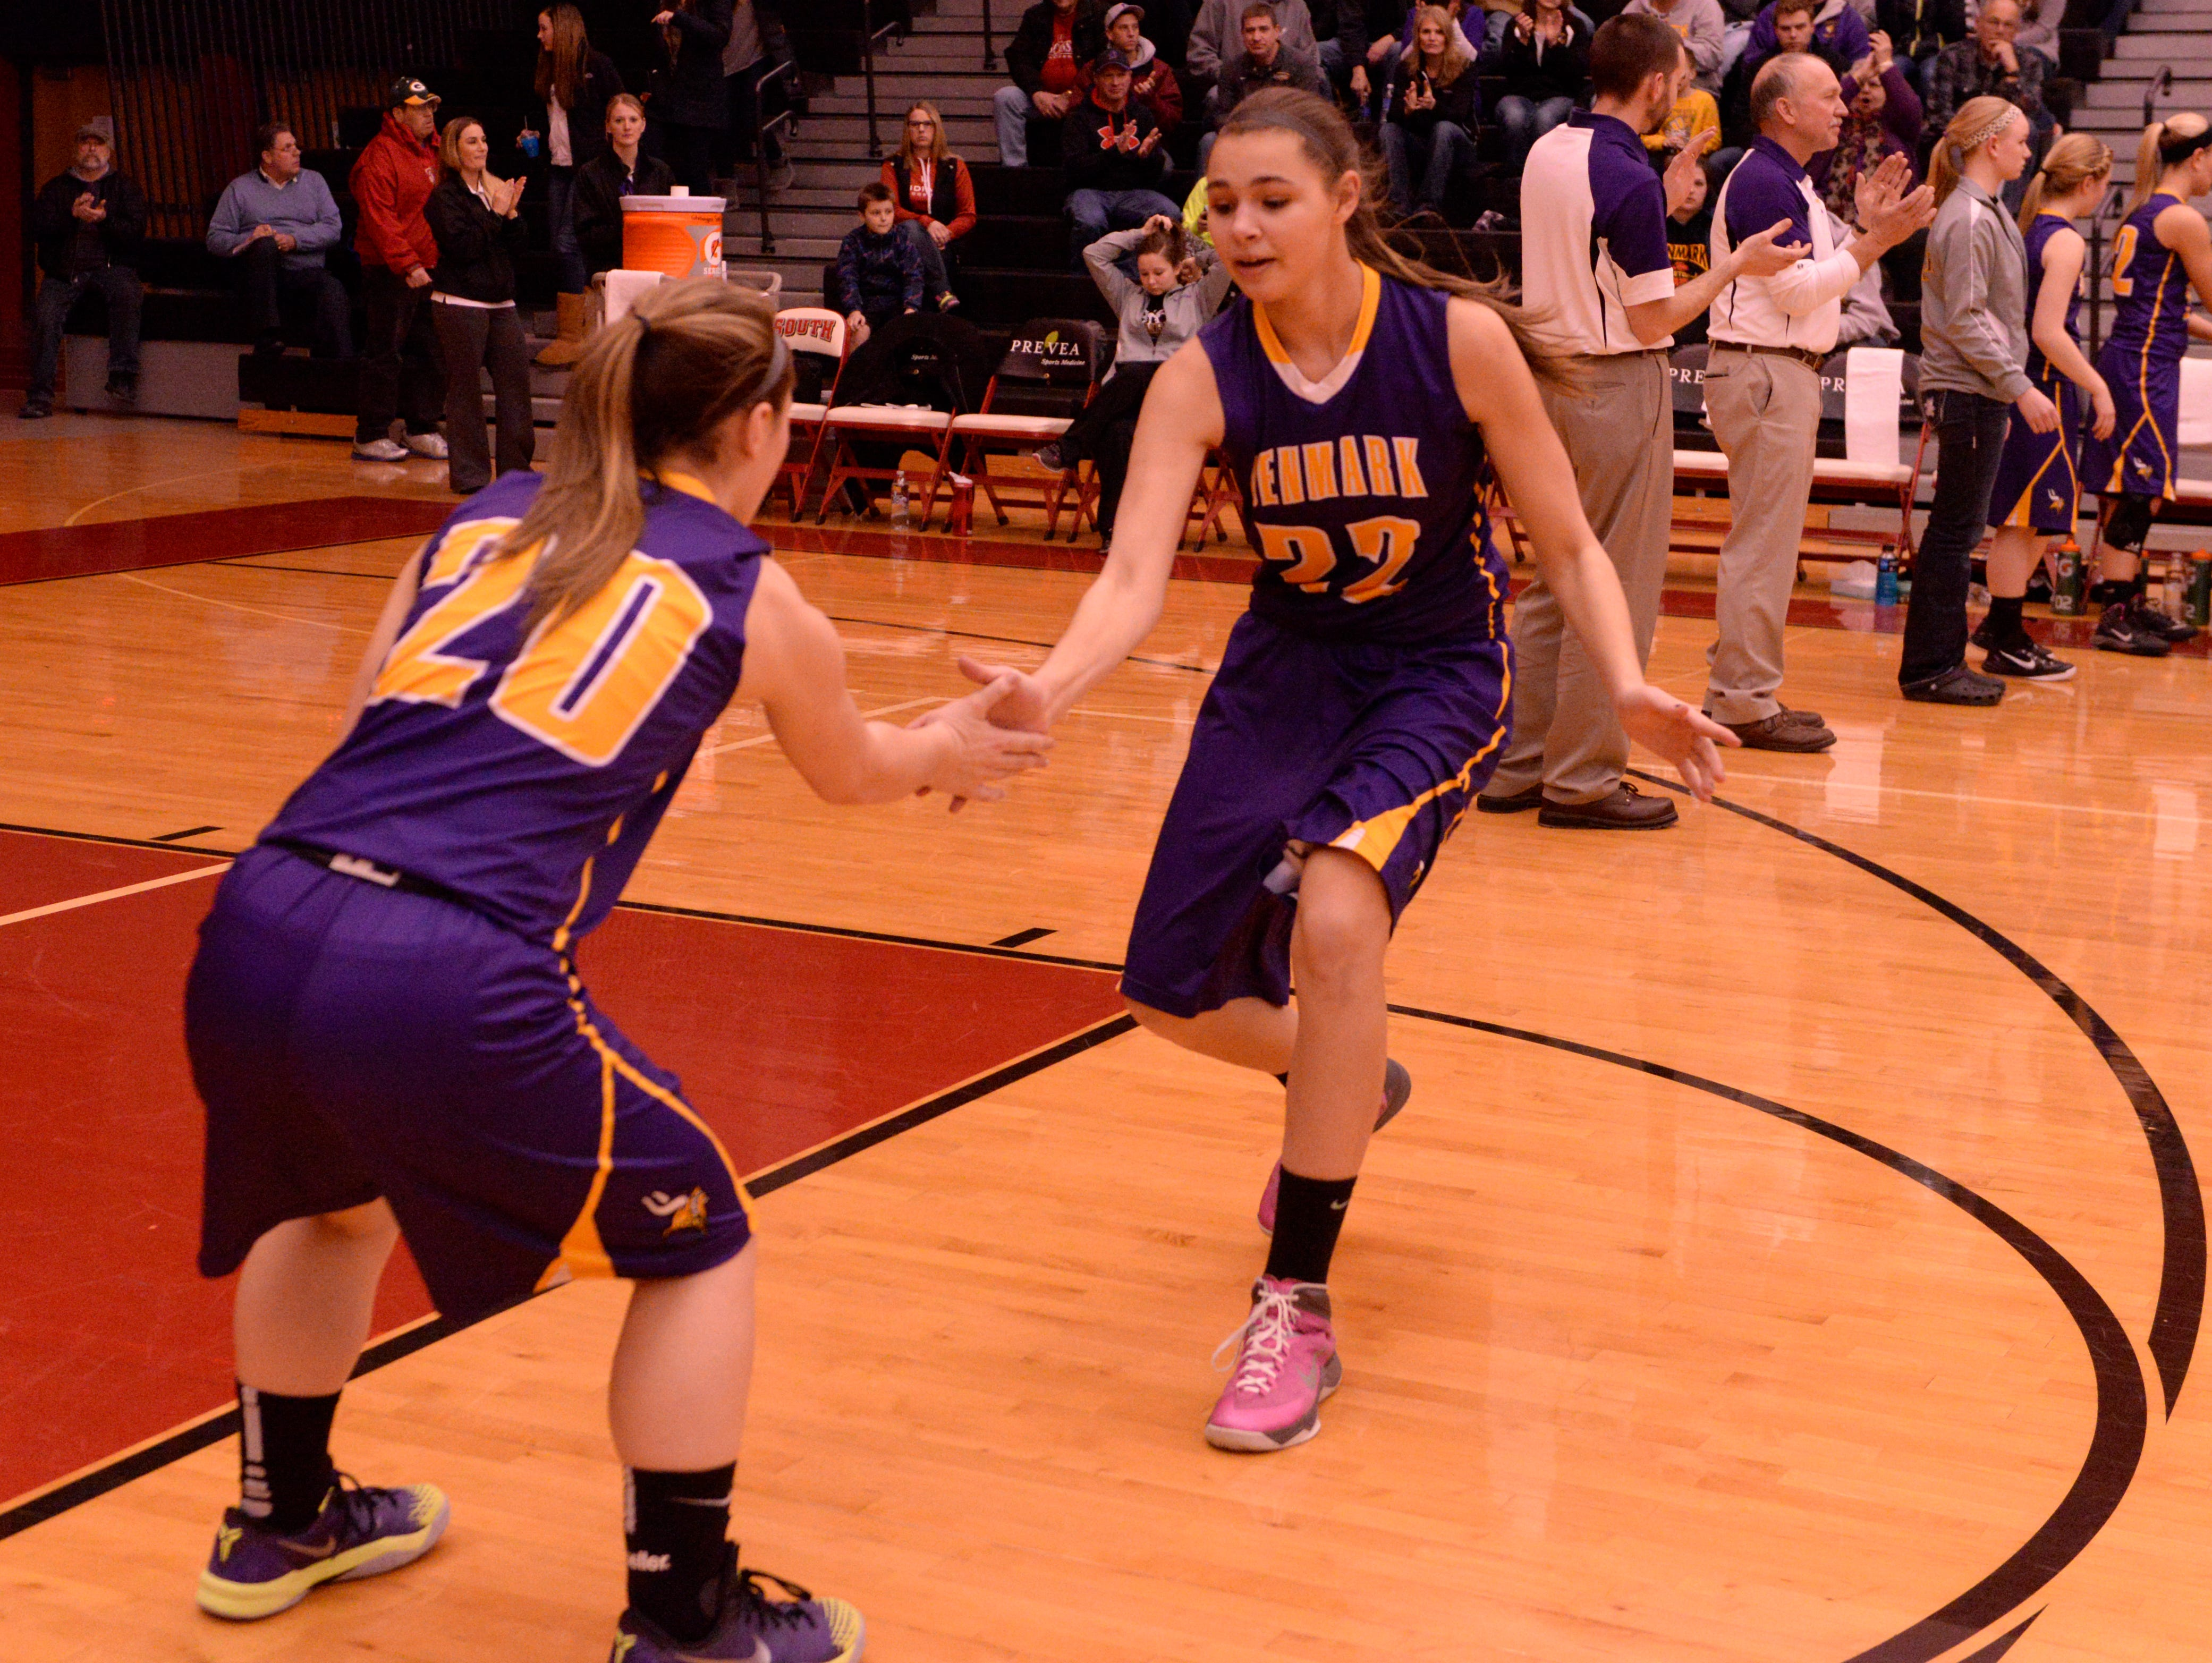 Ashley Leiterman (No. 22) and Leah Hansen (No. 20), shown during a WIAA Division 3 playoff game last year, both return for Denmark this season.